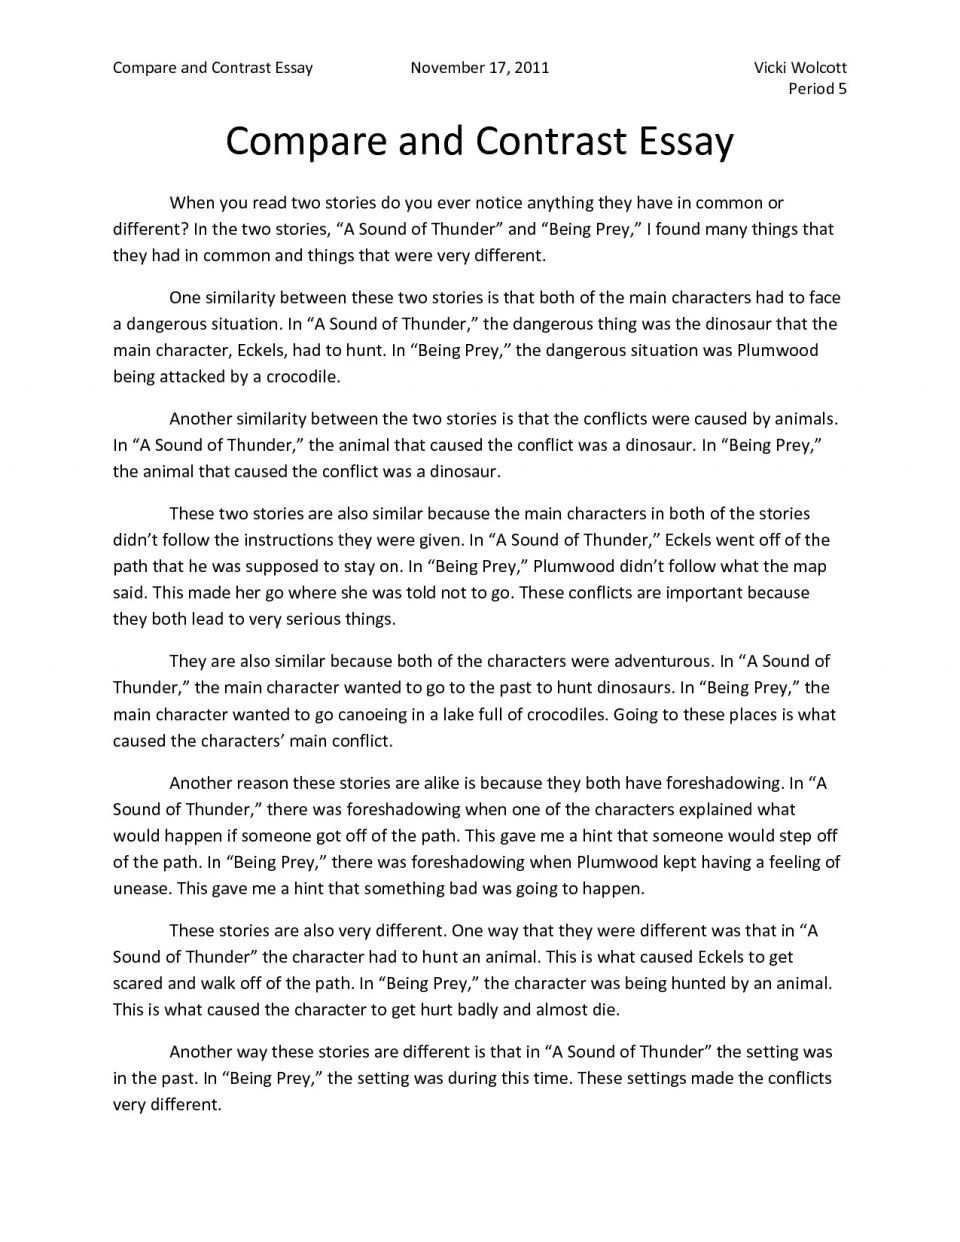 006 Comparing And Contrasting Essay Example Satire Examples Of Comparison Contrast Essays Com How To Write Outstanding A Compare Block Format Thesis Introduction Paragraph 960